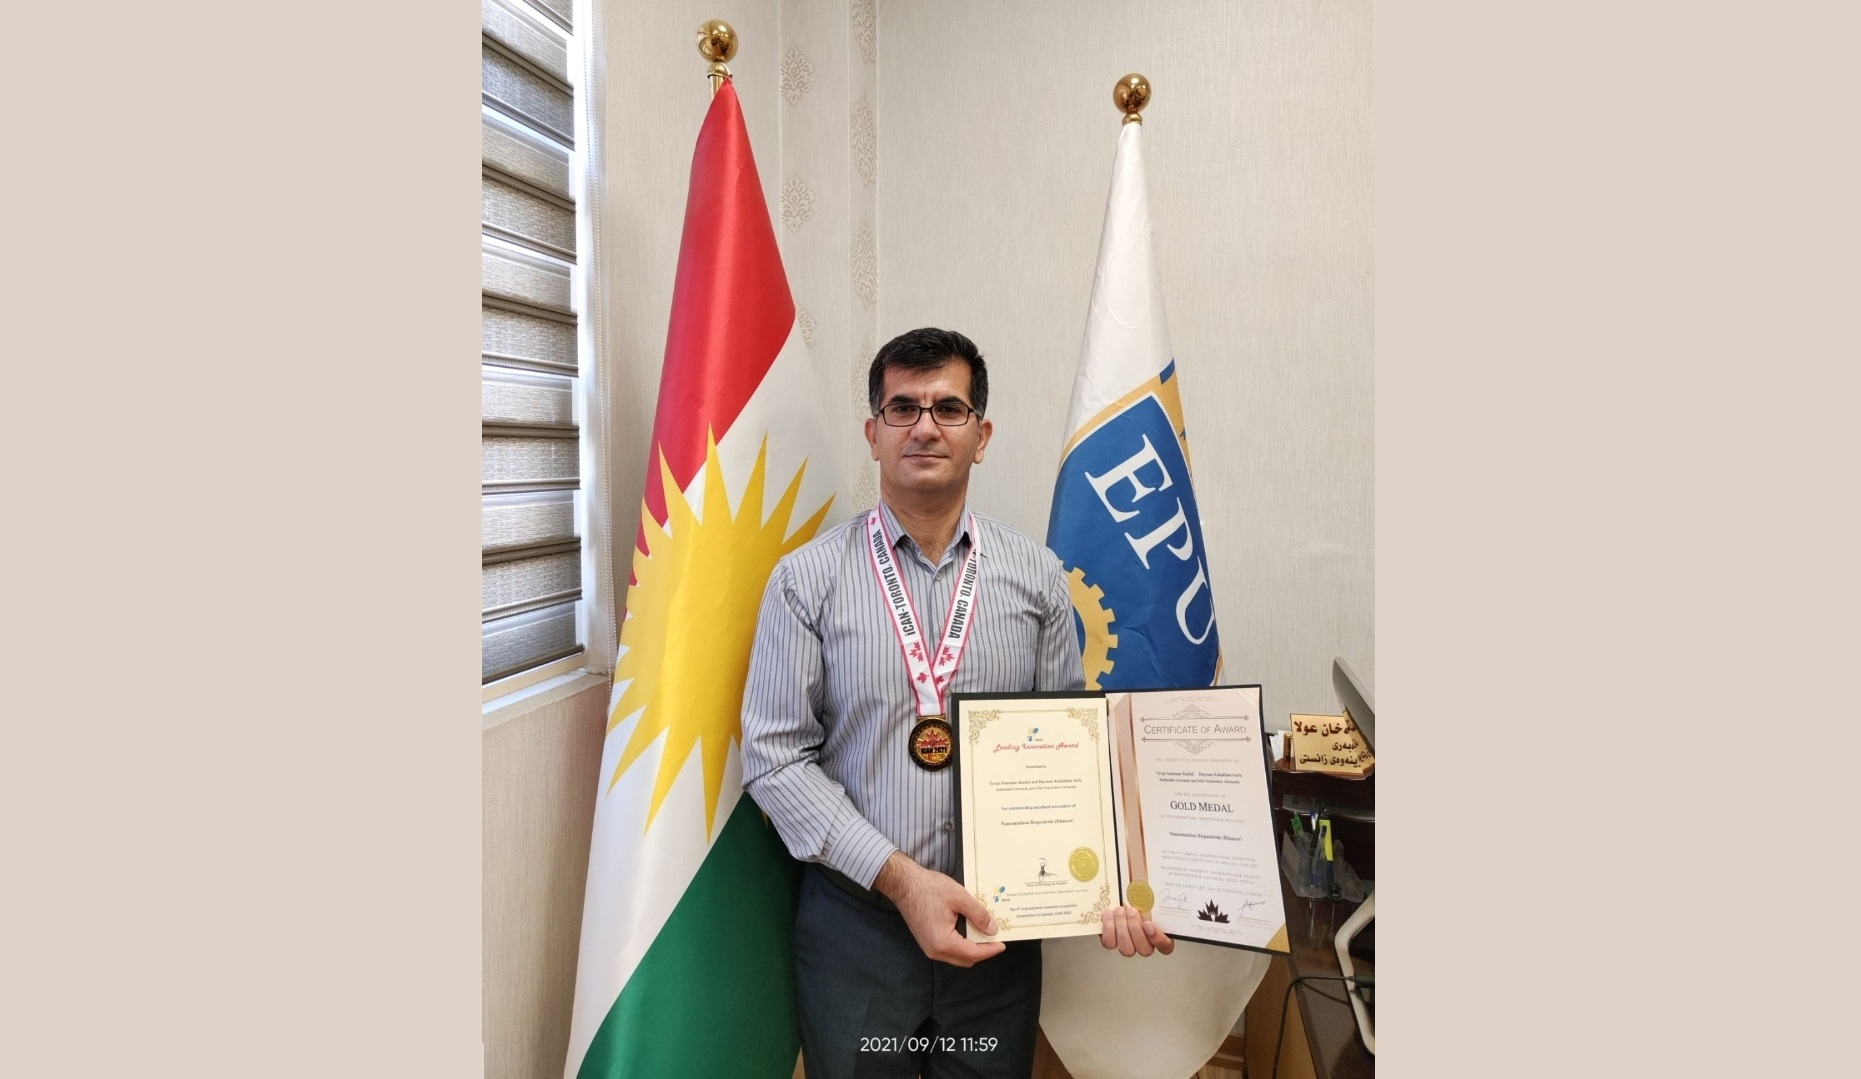 A Lecturer of Erbil Polytechnic University Has Been Awarded by A Gold Medal In An International Conference